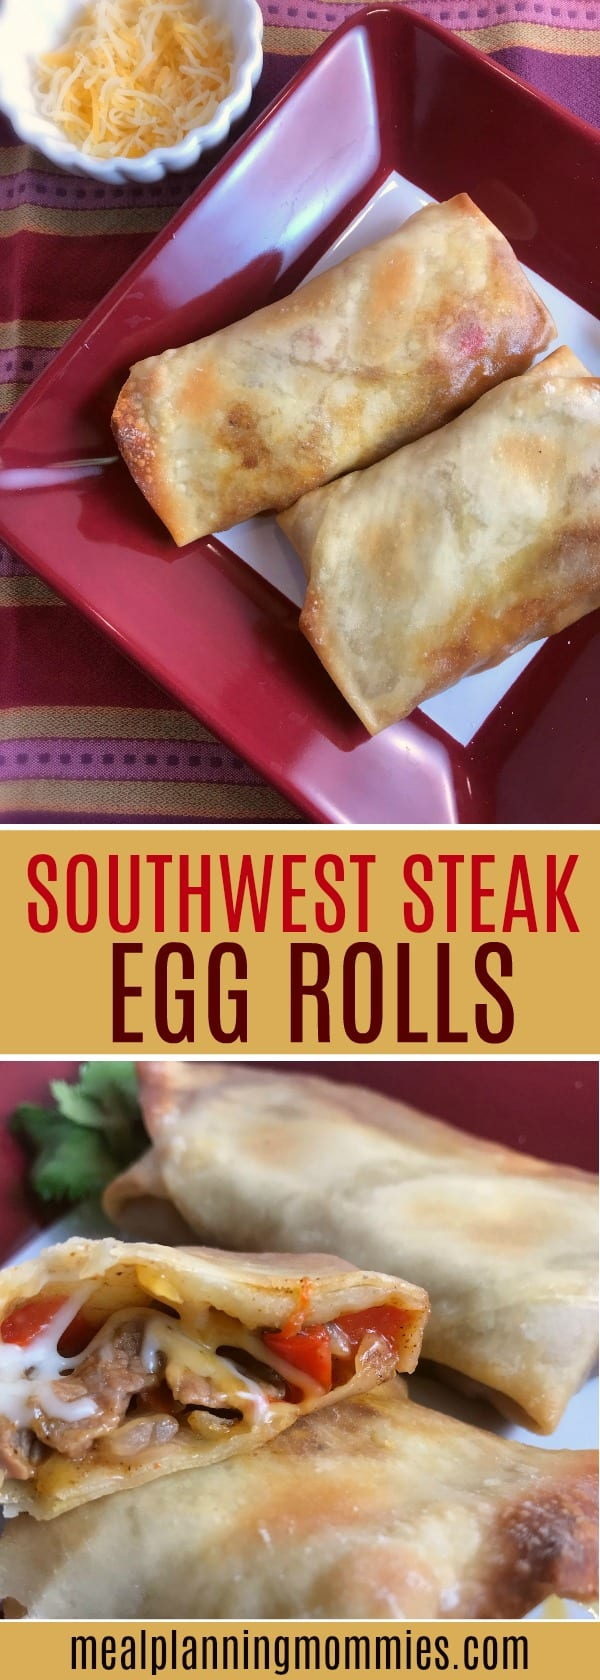 These Southwest Steak Egg Rolls are delicious - Just 4 WW FreeStyle Smart Points per egg roll.